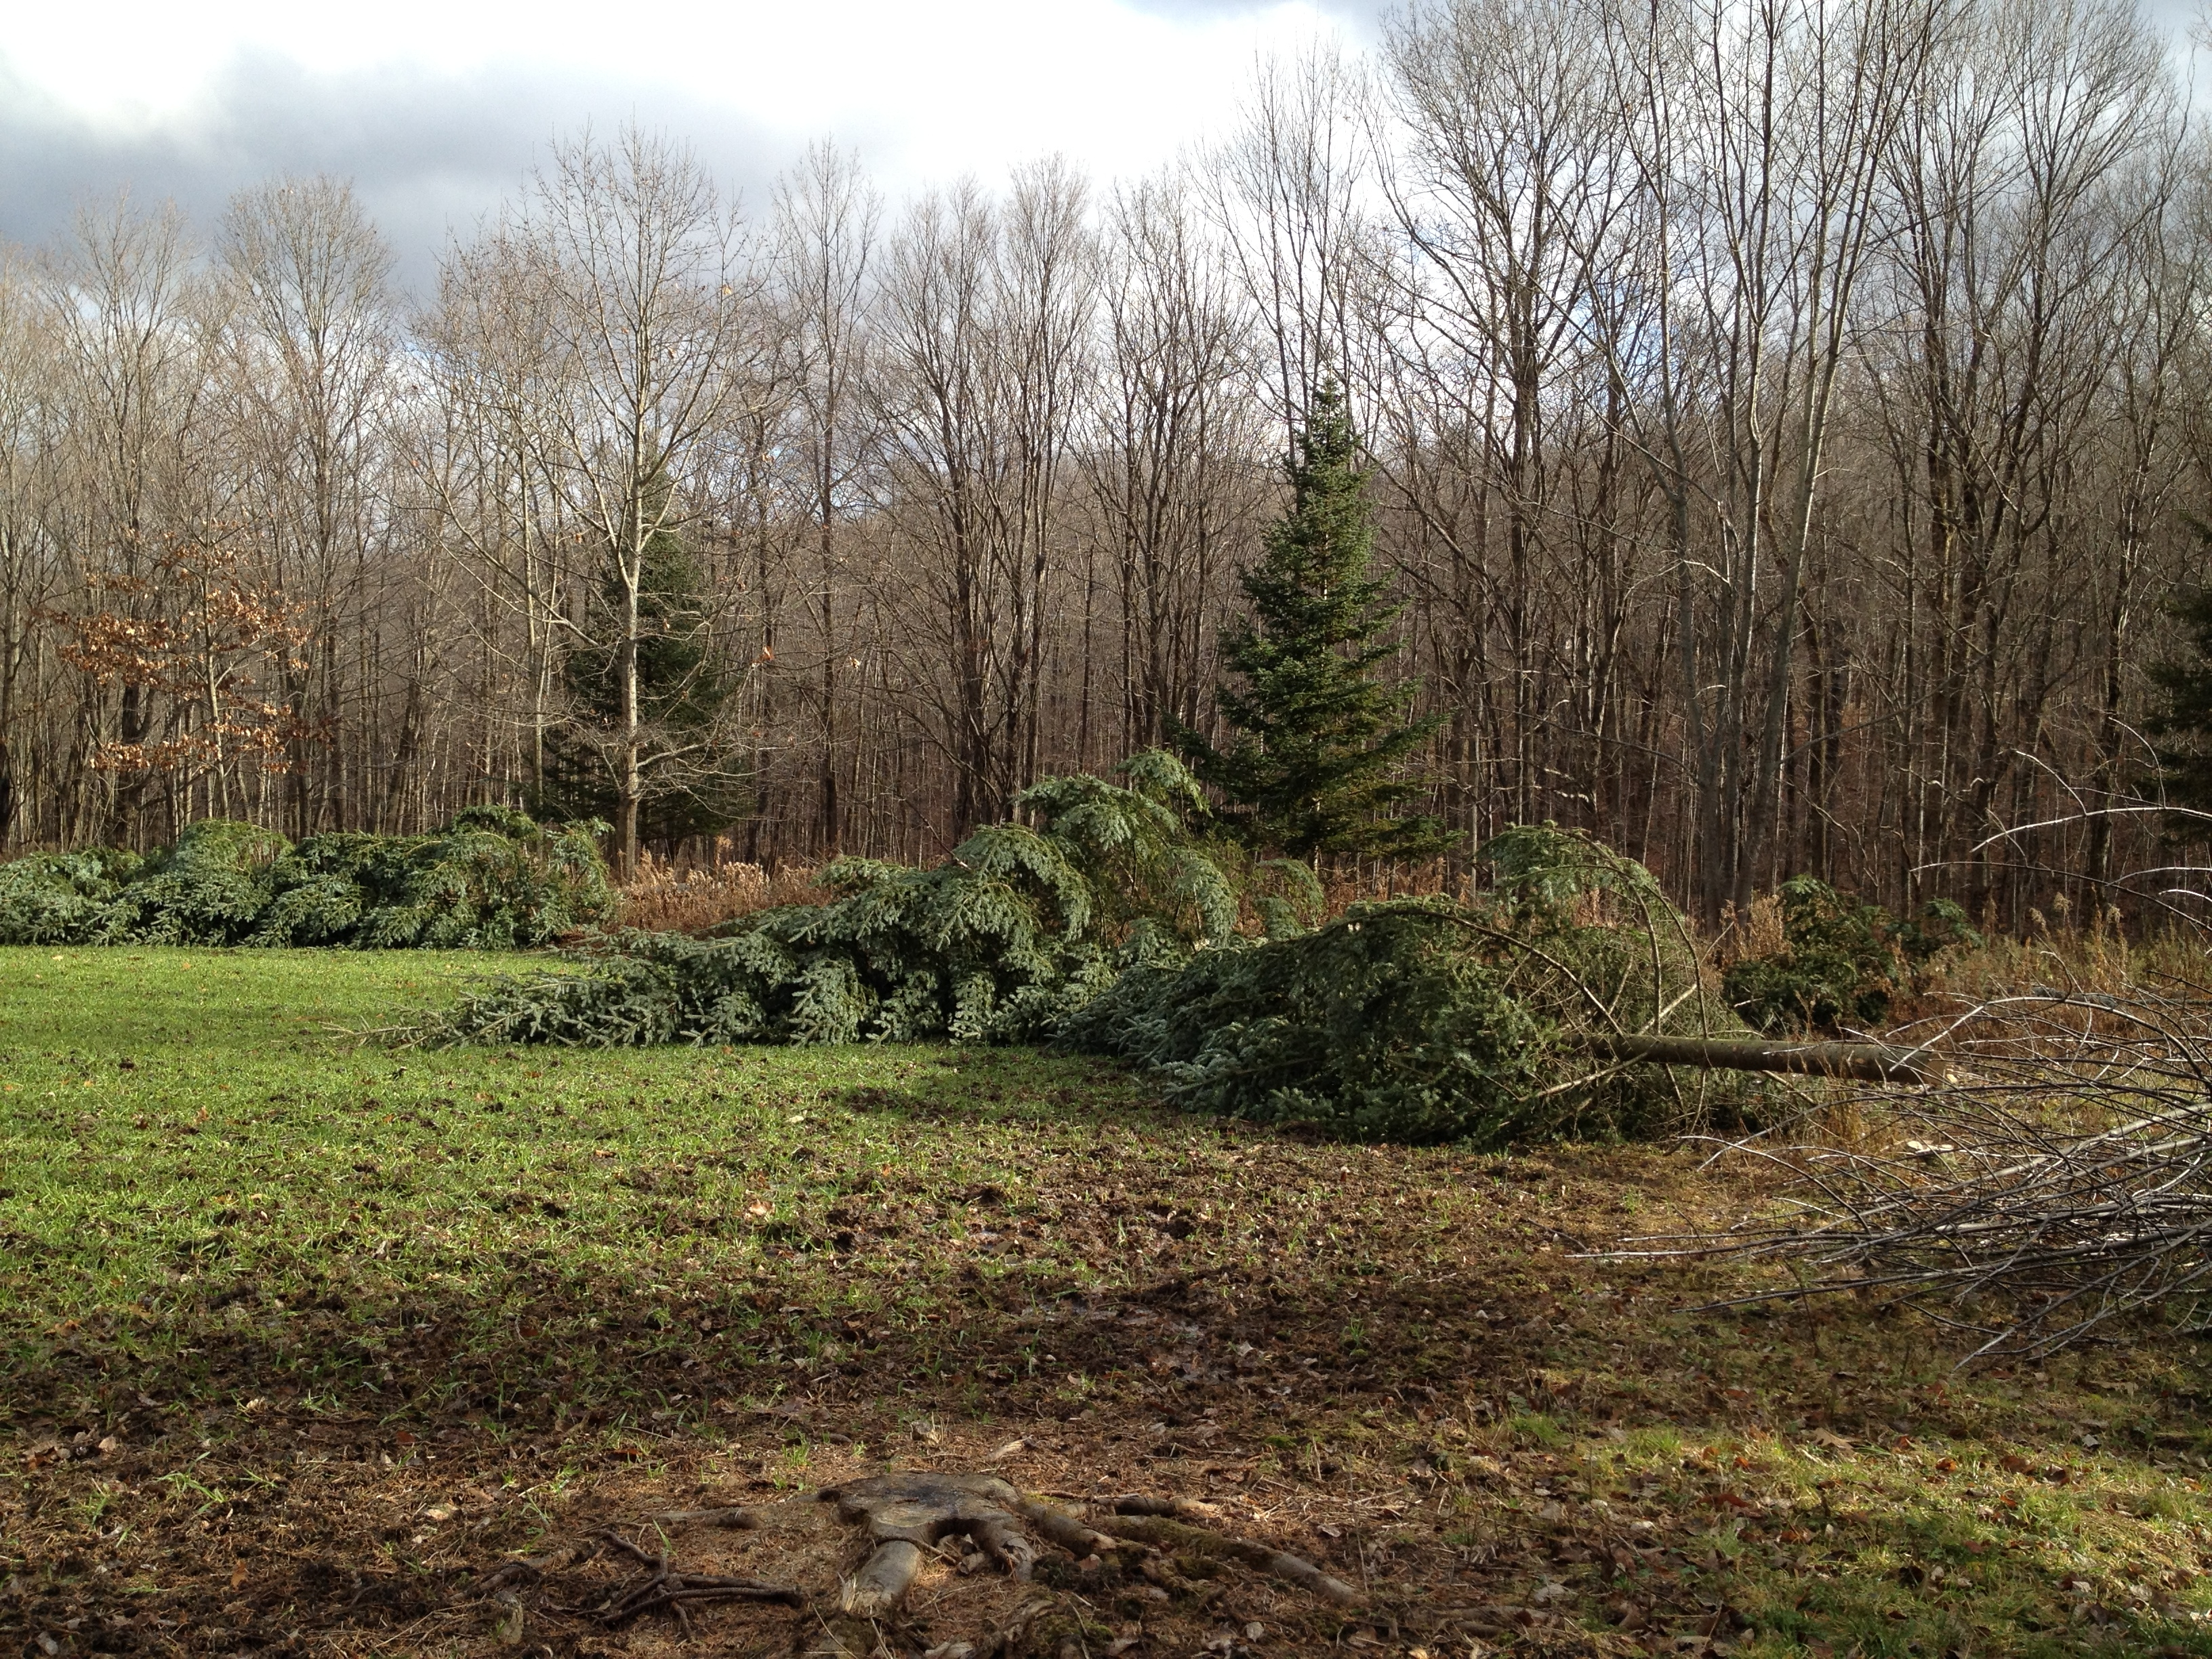 Culling Trees to Add Sunlight